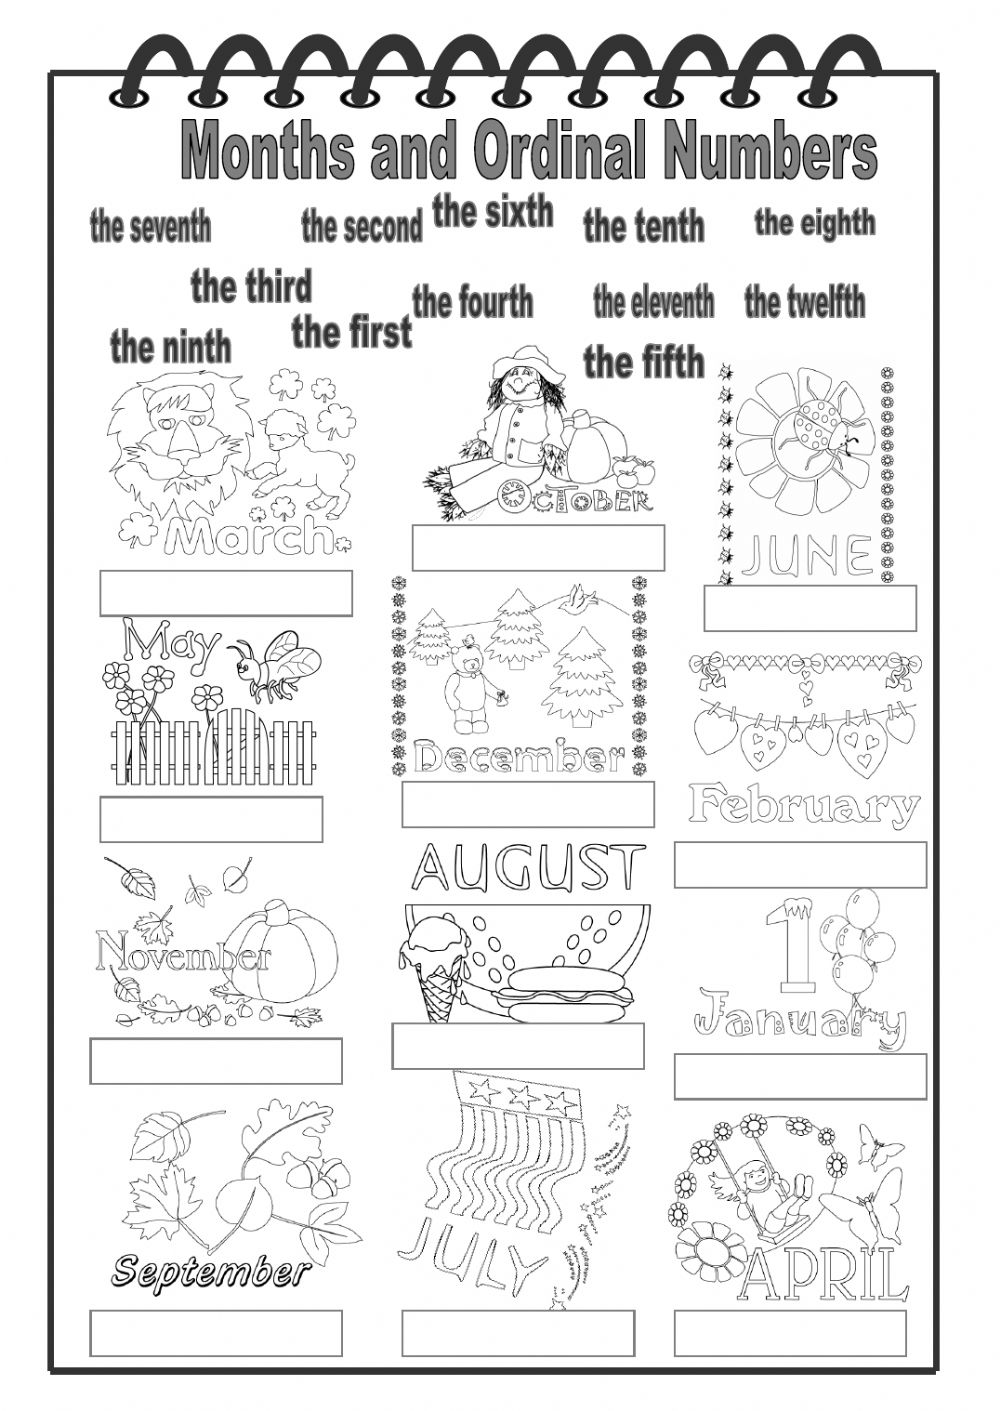 Months and Ordinal Numbers worksheet